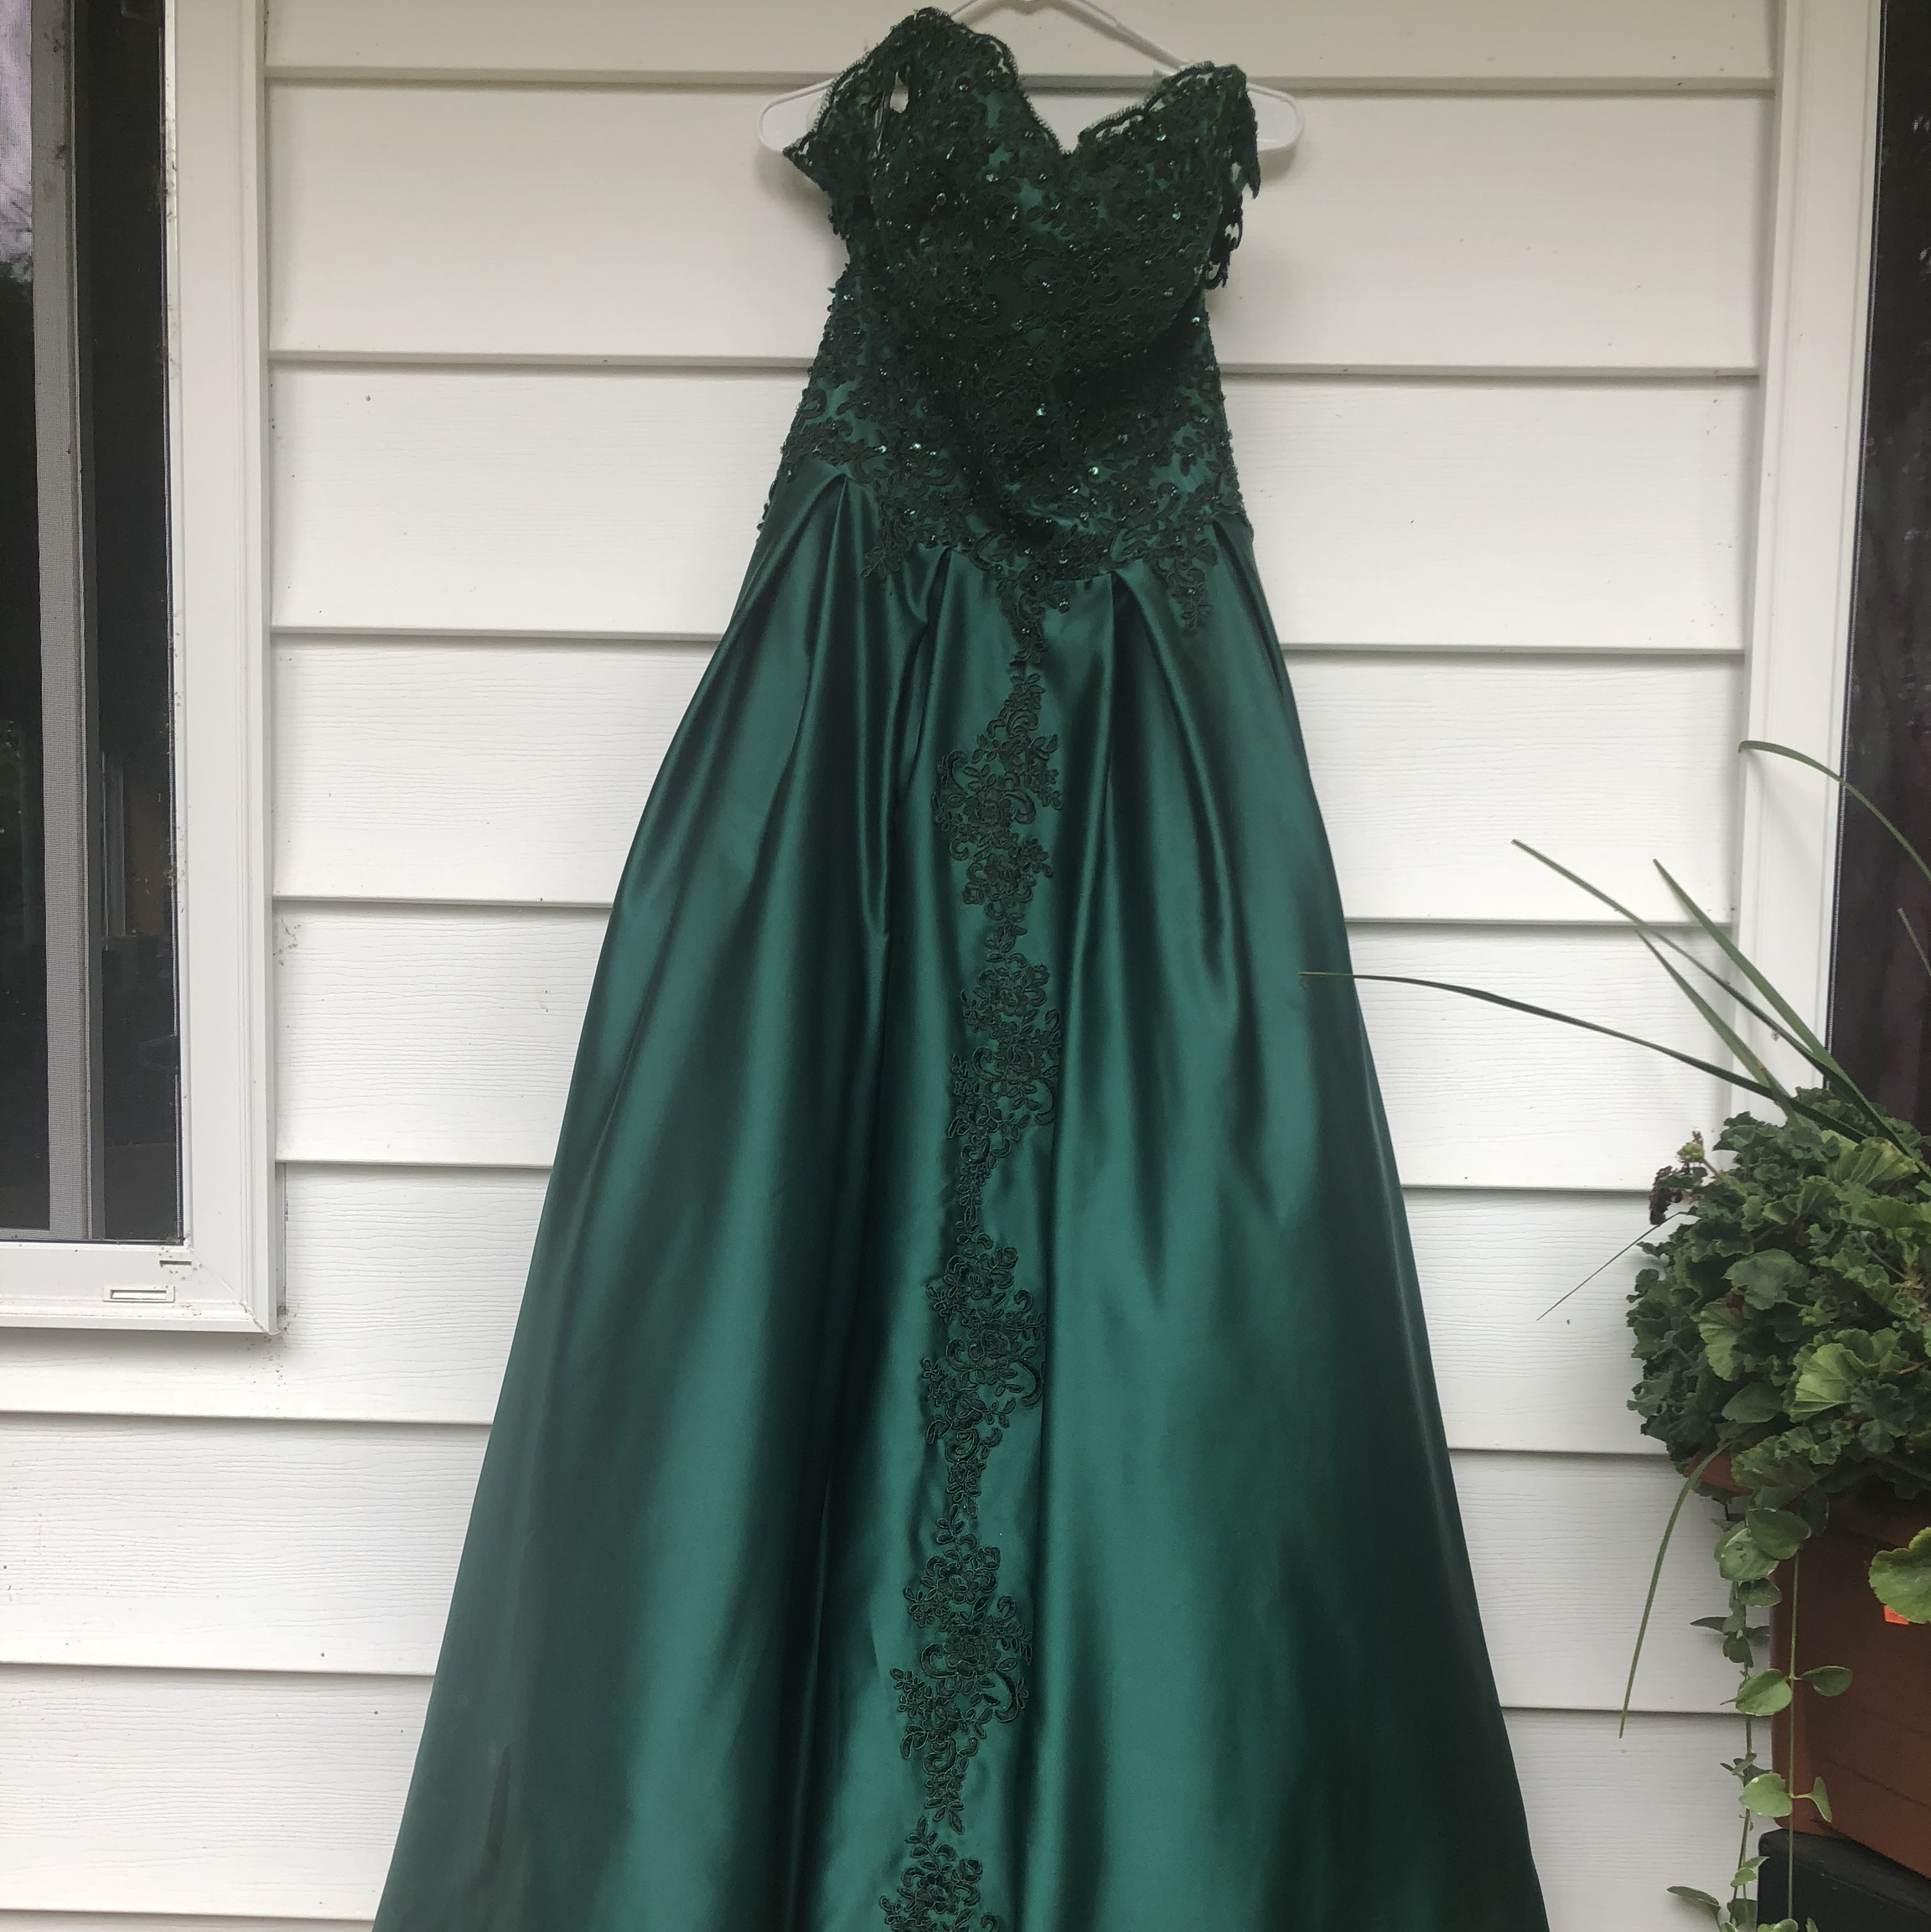 new arrival delicate colors differently 👗HEBEOS PROM DRESS👗 - enchanted green dress - i am... - Depop